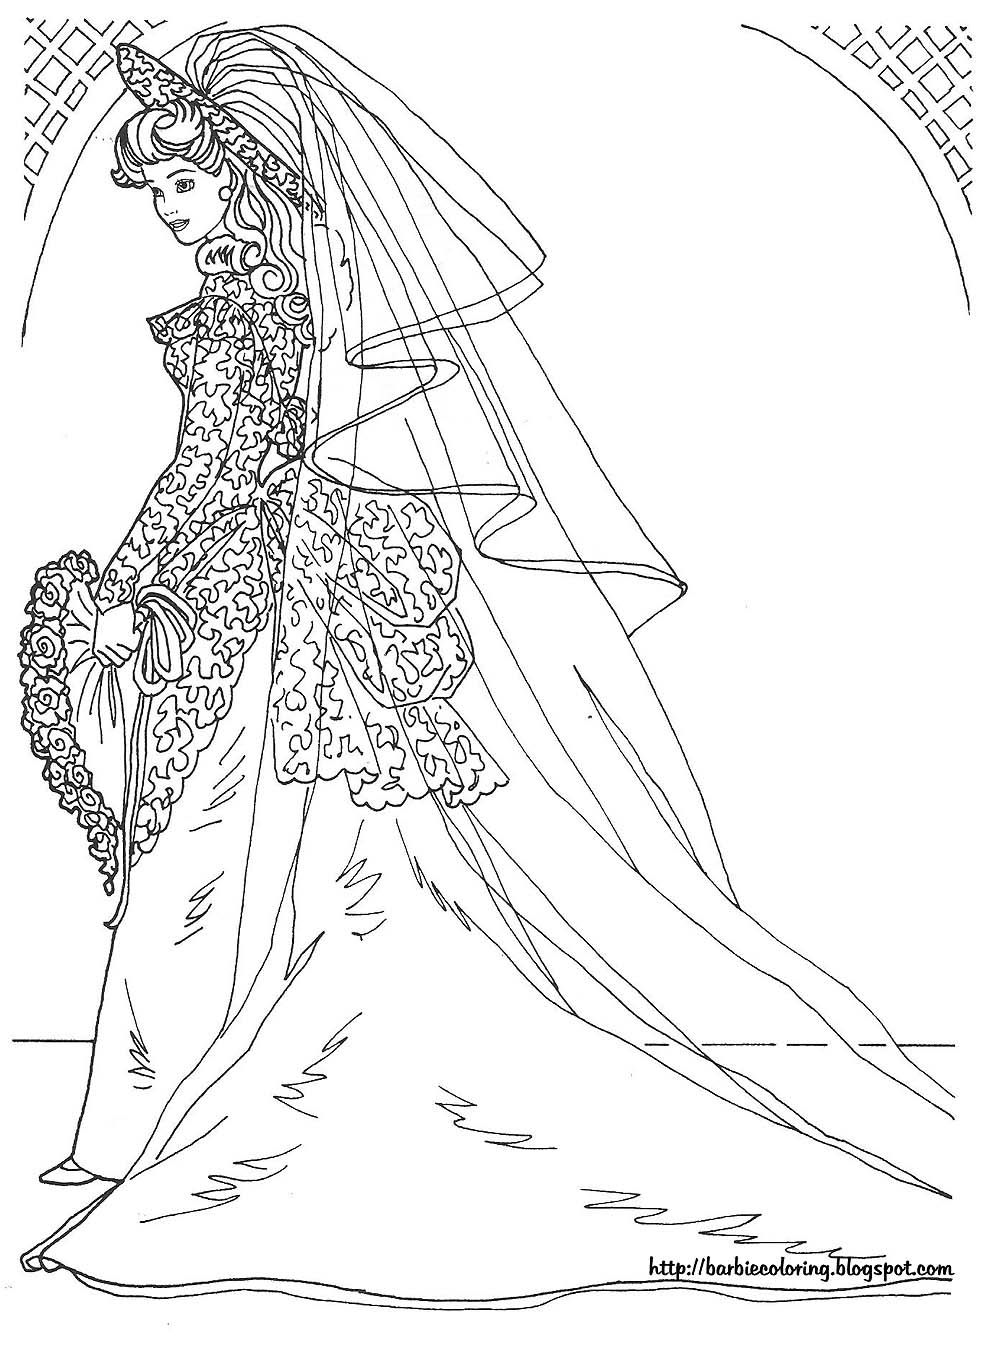 BARBIE COLORING PAGES WEDDING DRESS